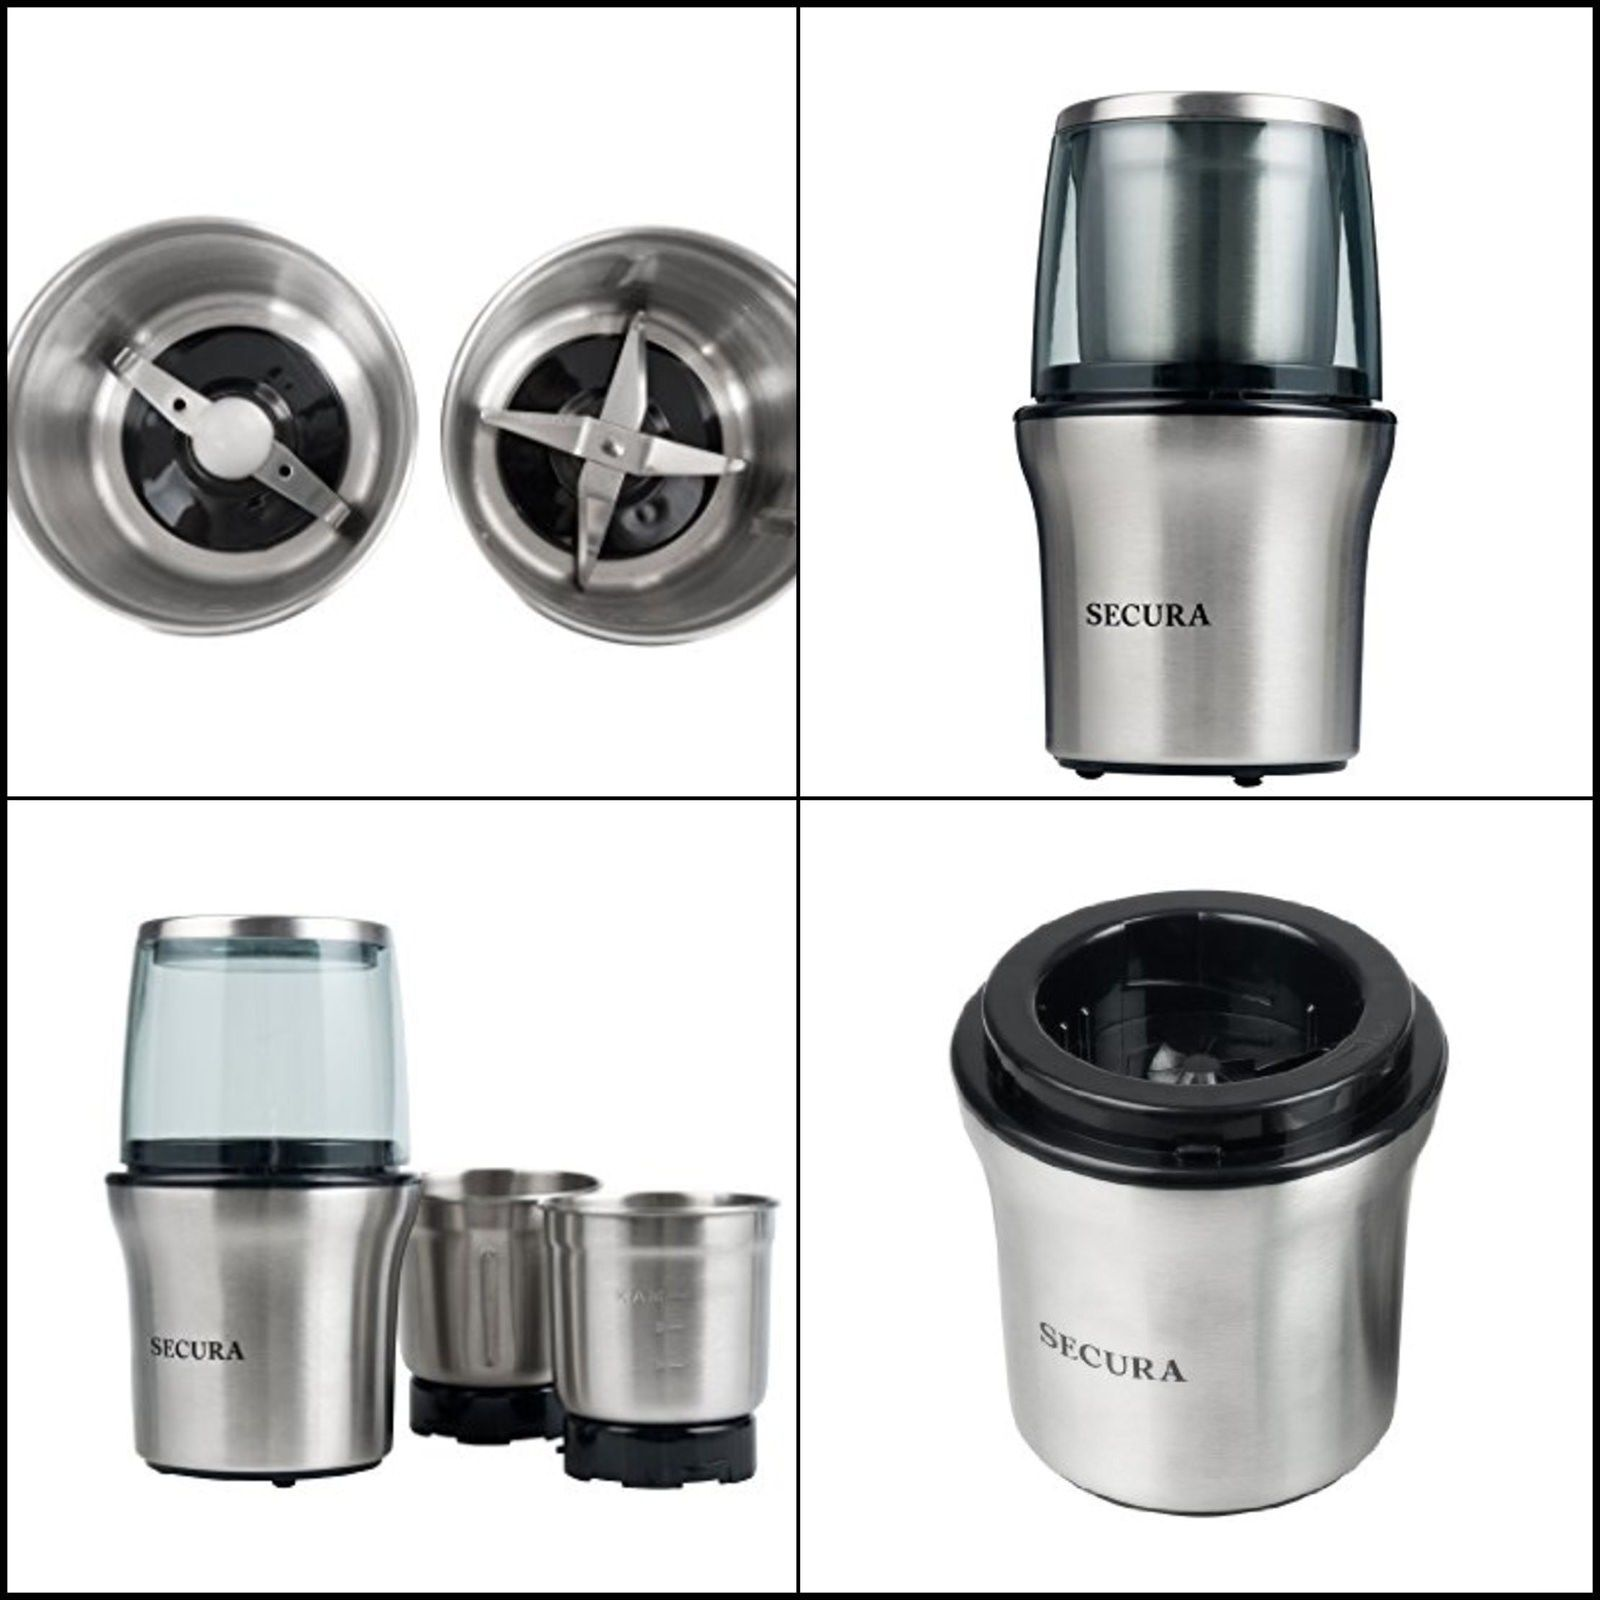 Electric Coffee Grinder Secura And Spice Grinder W 2 Stainless-Steel Blades NEW